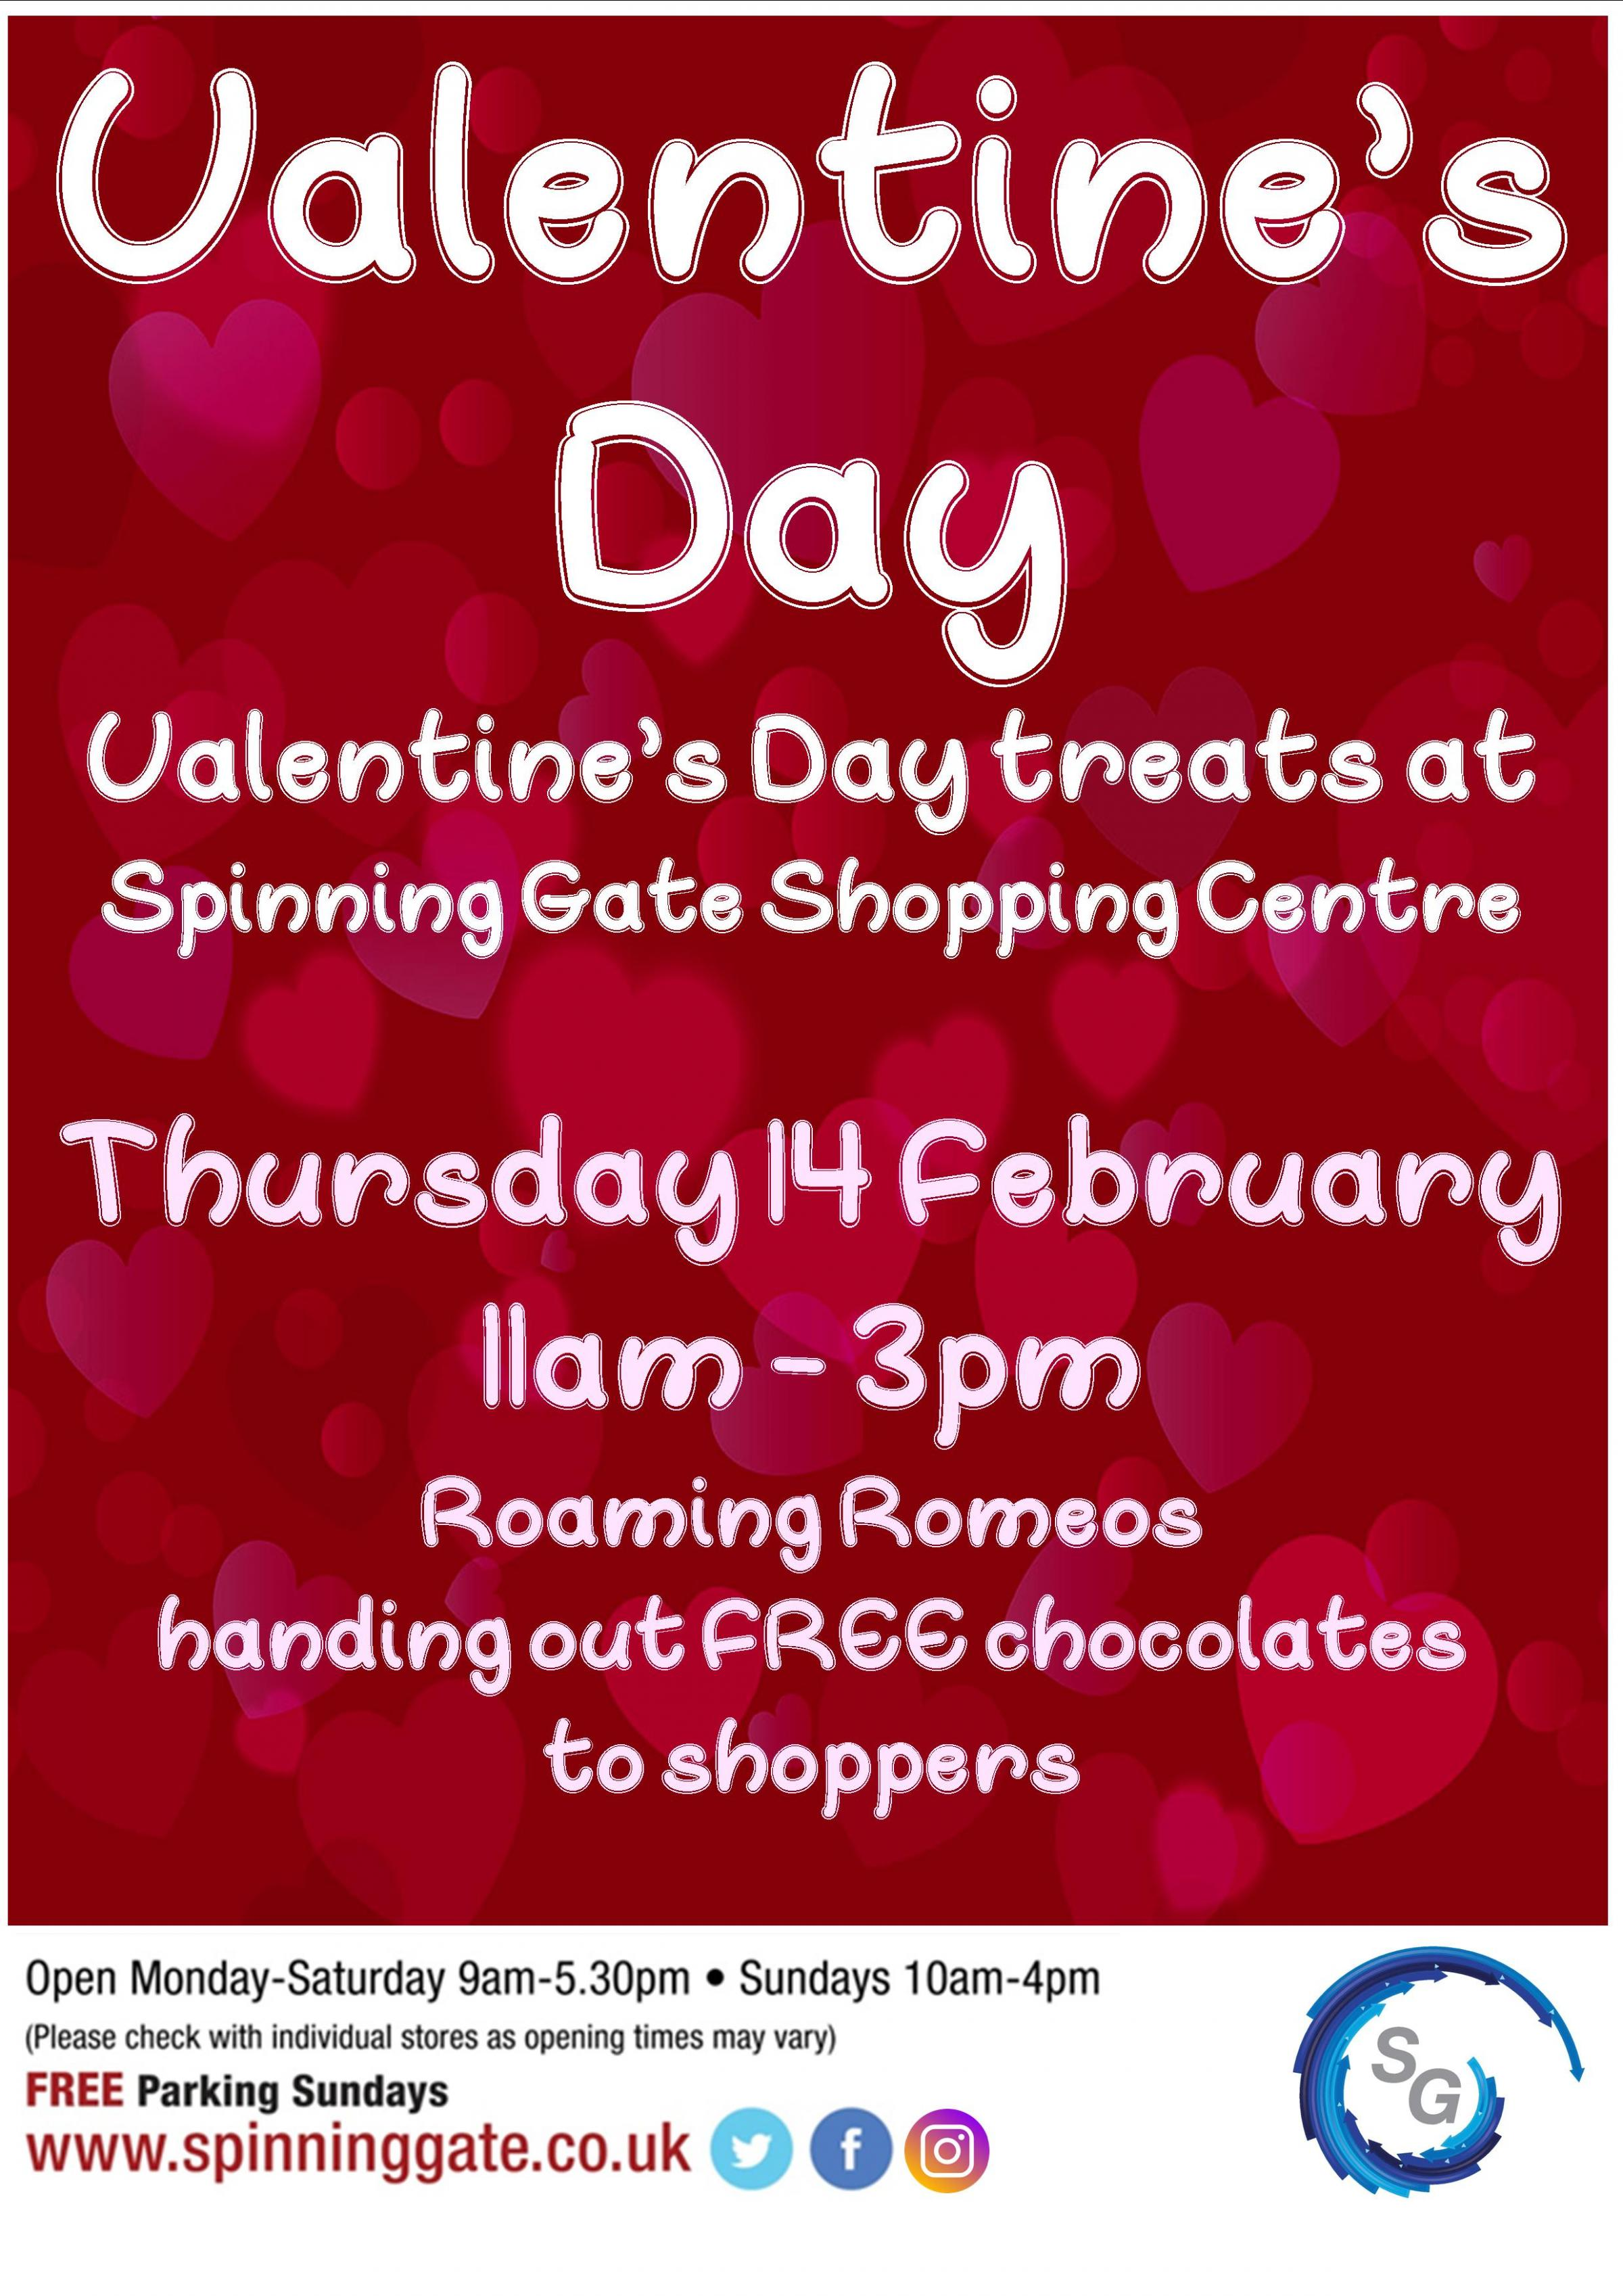 Valentine's Day Treats at Spinning Gate Shopping Centre